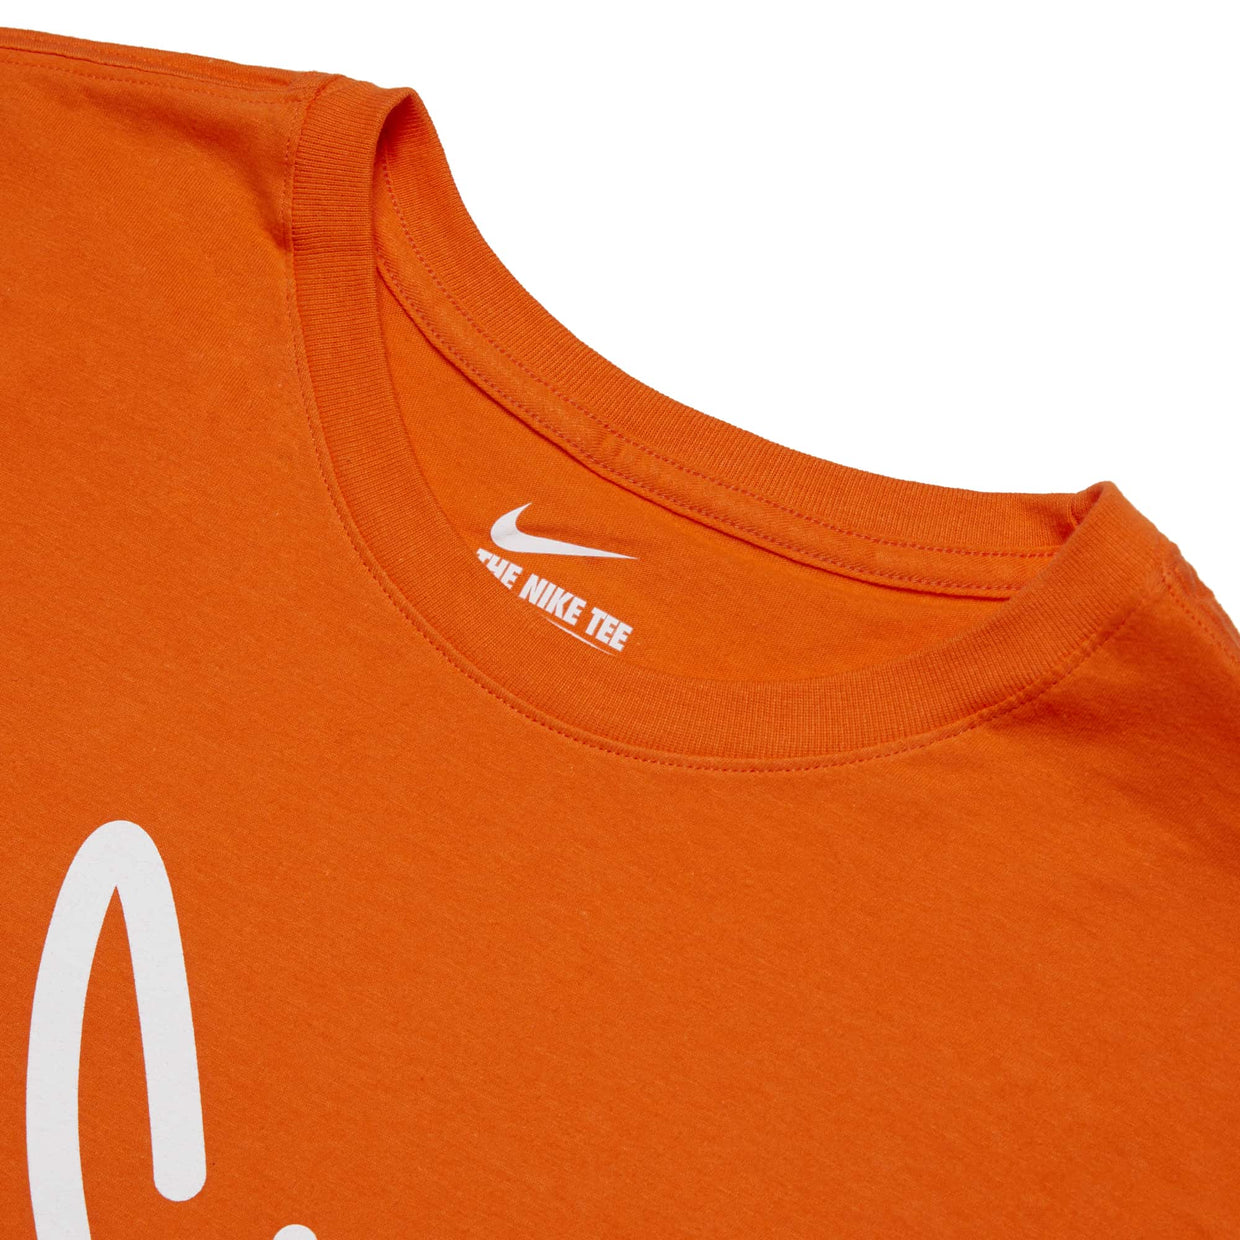 116 x Nike Core Tee - Brilliant Orange